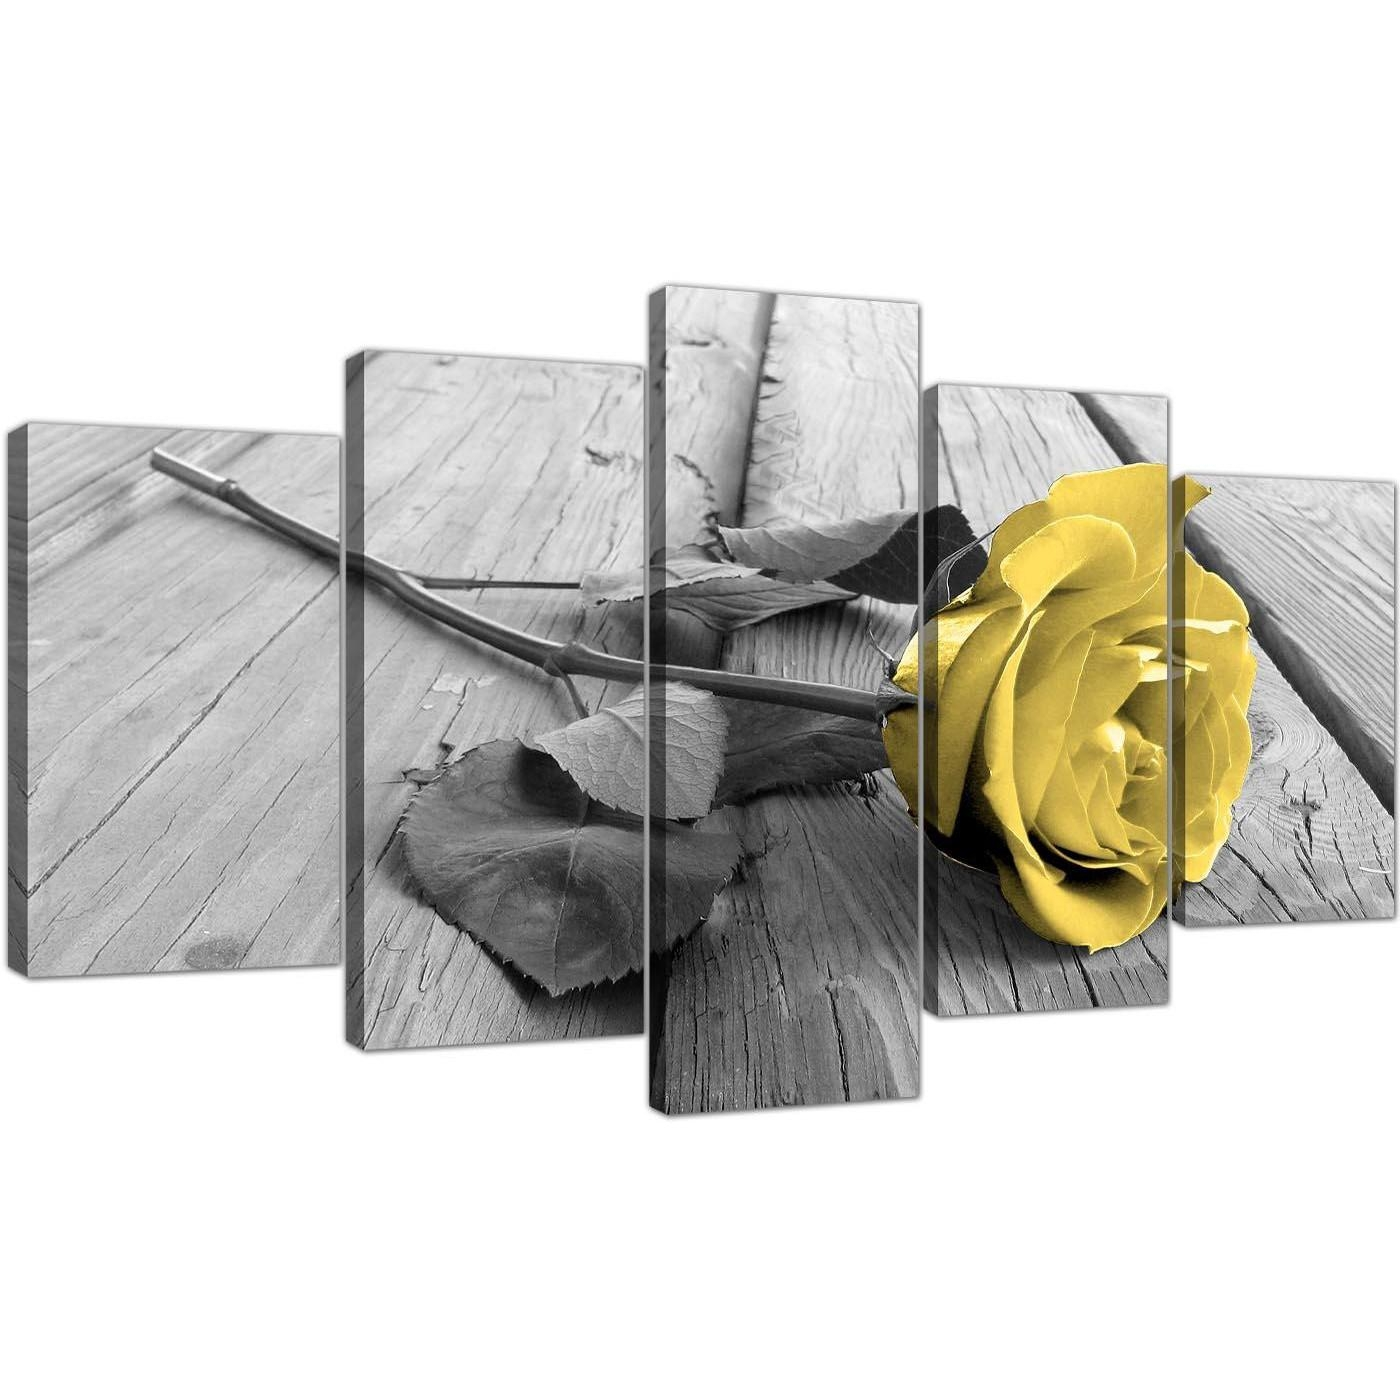 Extra Large Yellow And Grey Rose Canvas Wall Art 5 Piece In Black Throughout Large Yellow Wall Art (Image 5 of 20)